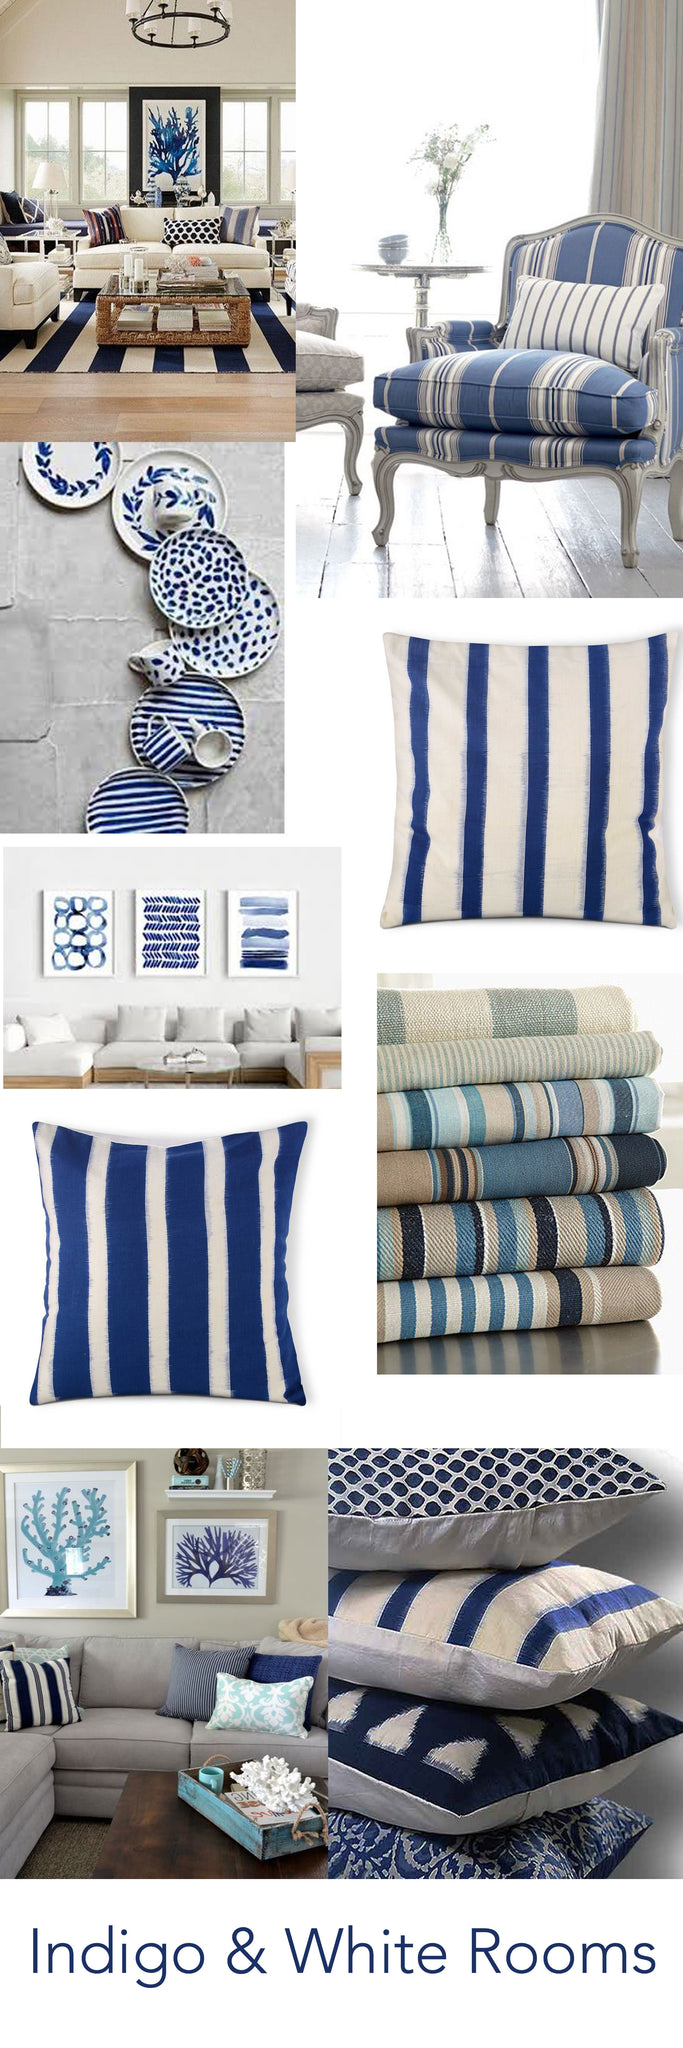 Indigo-White-Trends-Idea